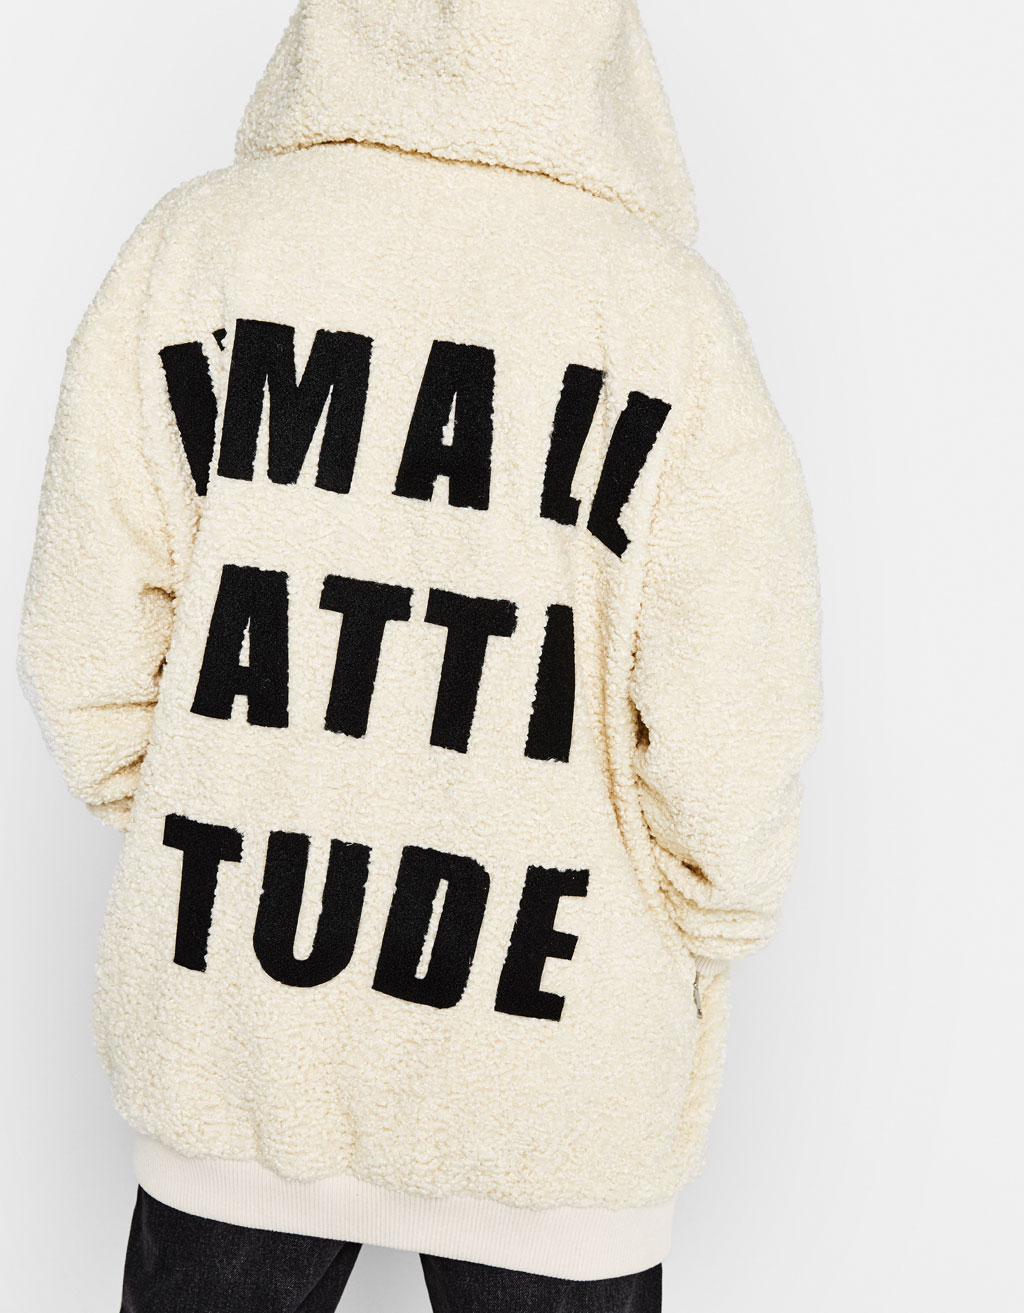 Manteau sherpa avec inscription